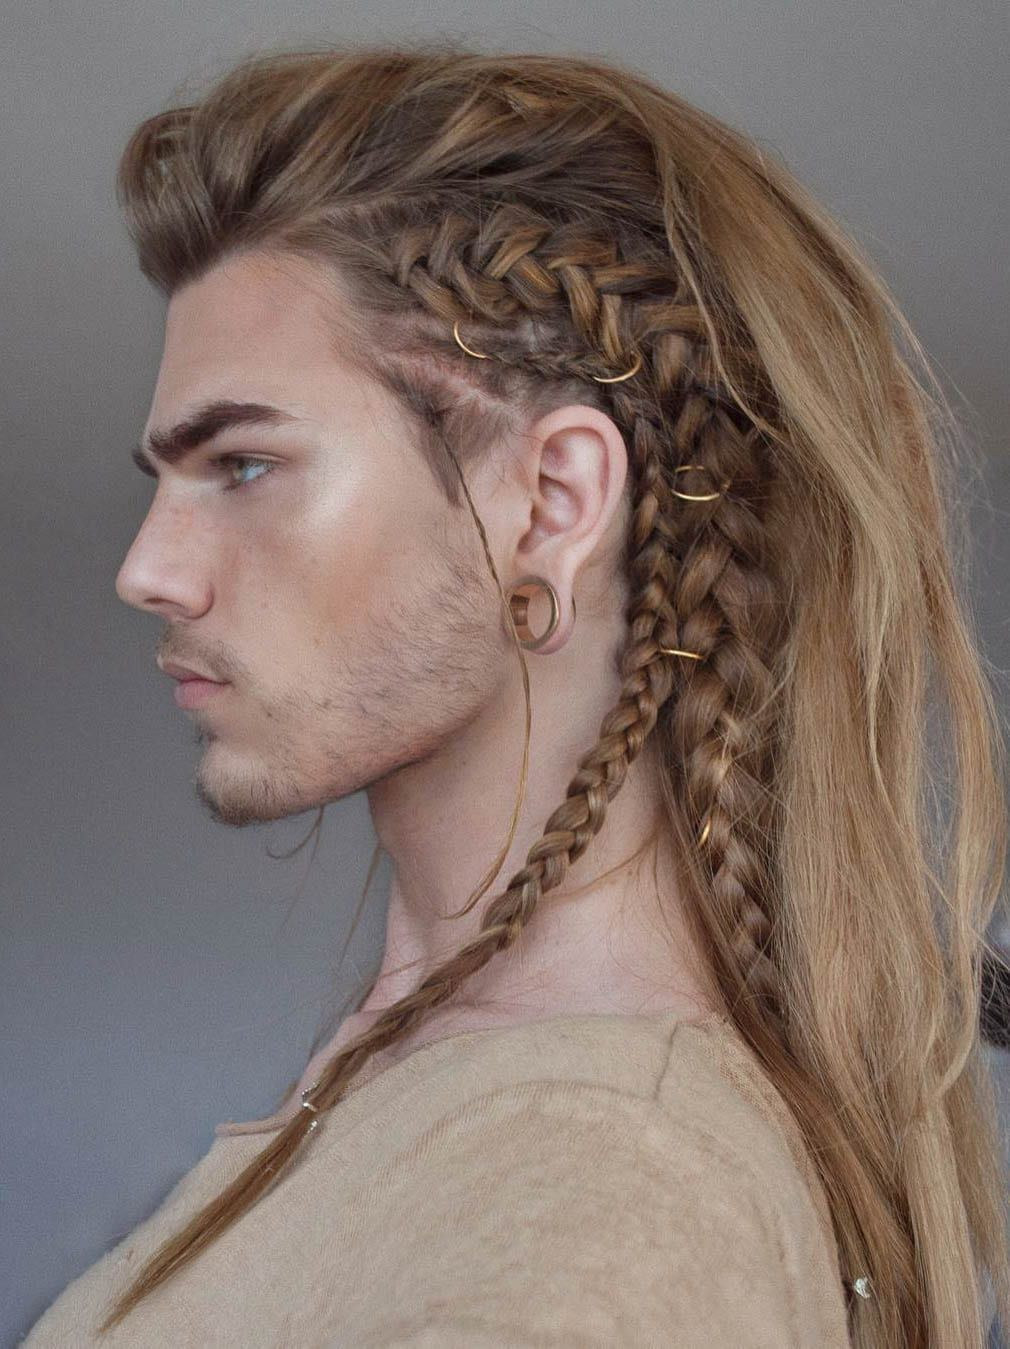 hair style for man with long hair